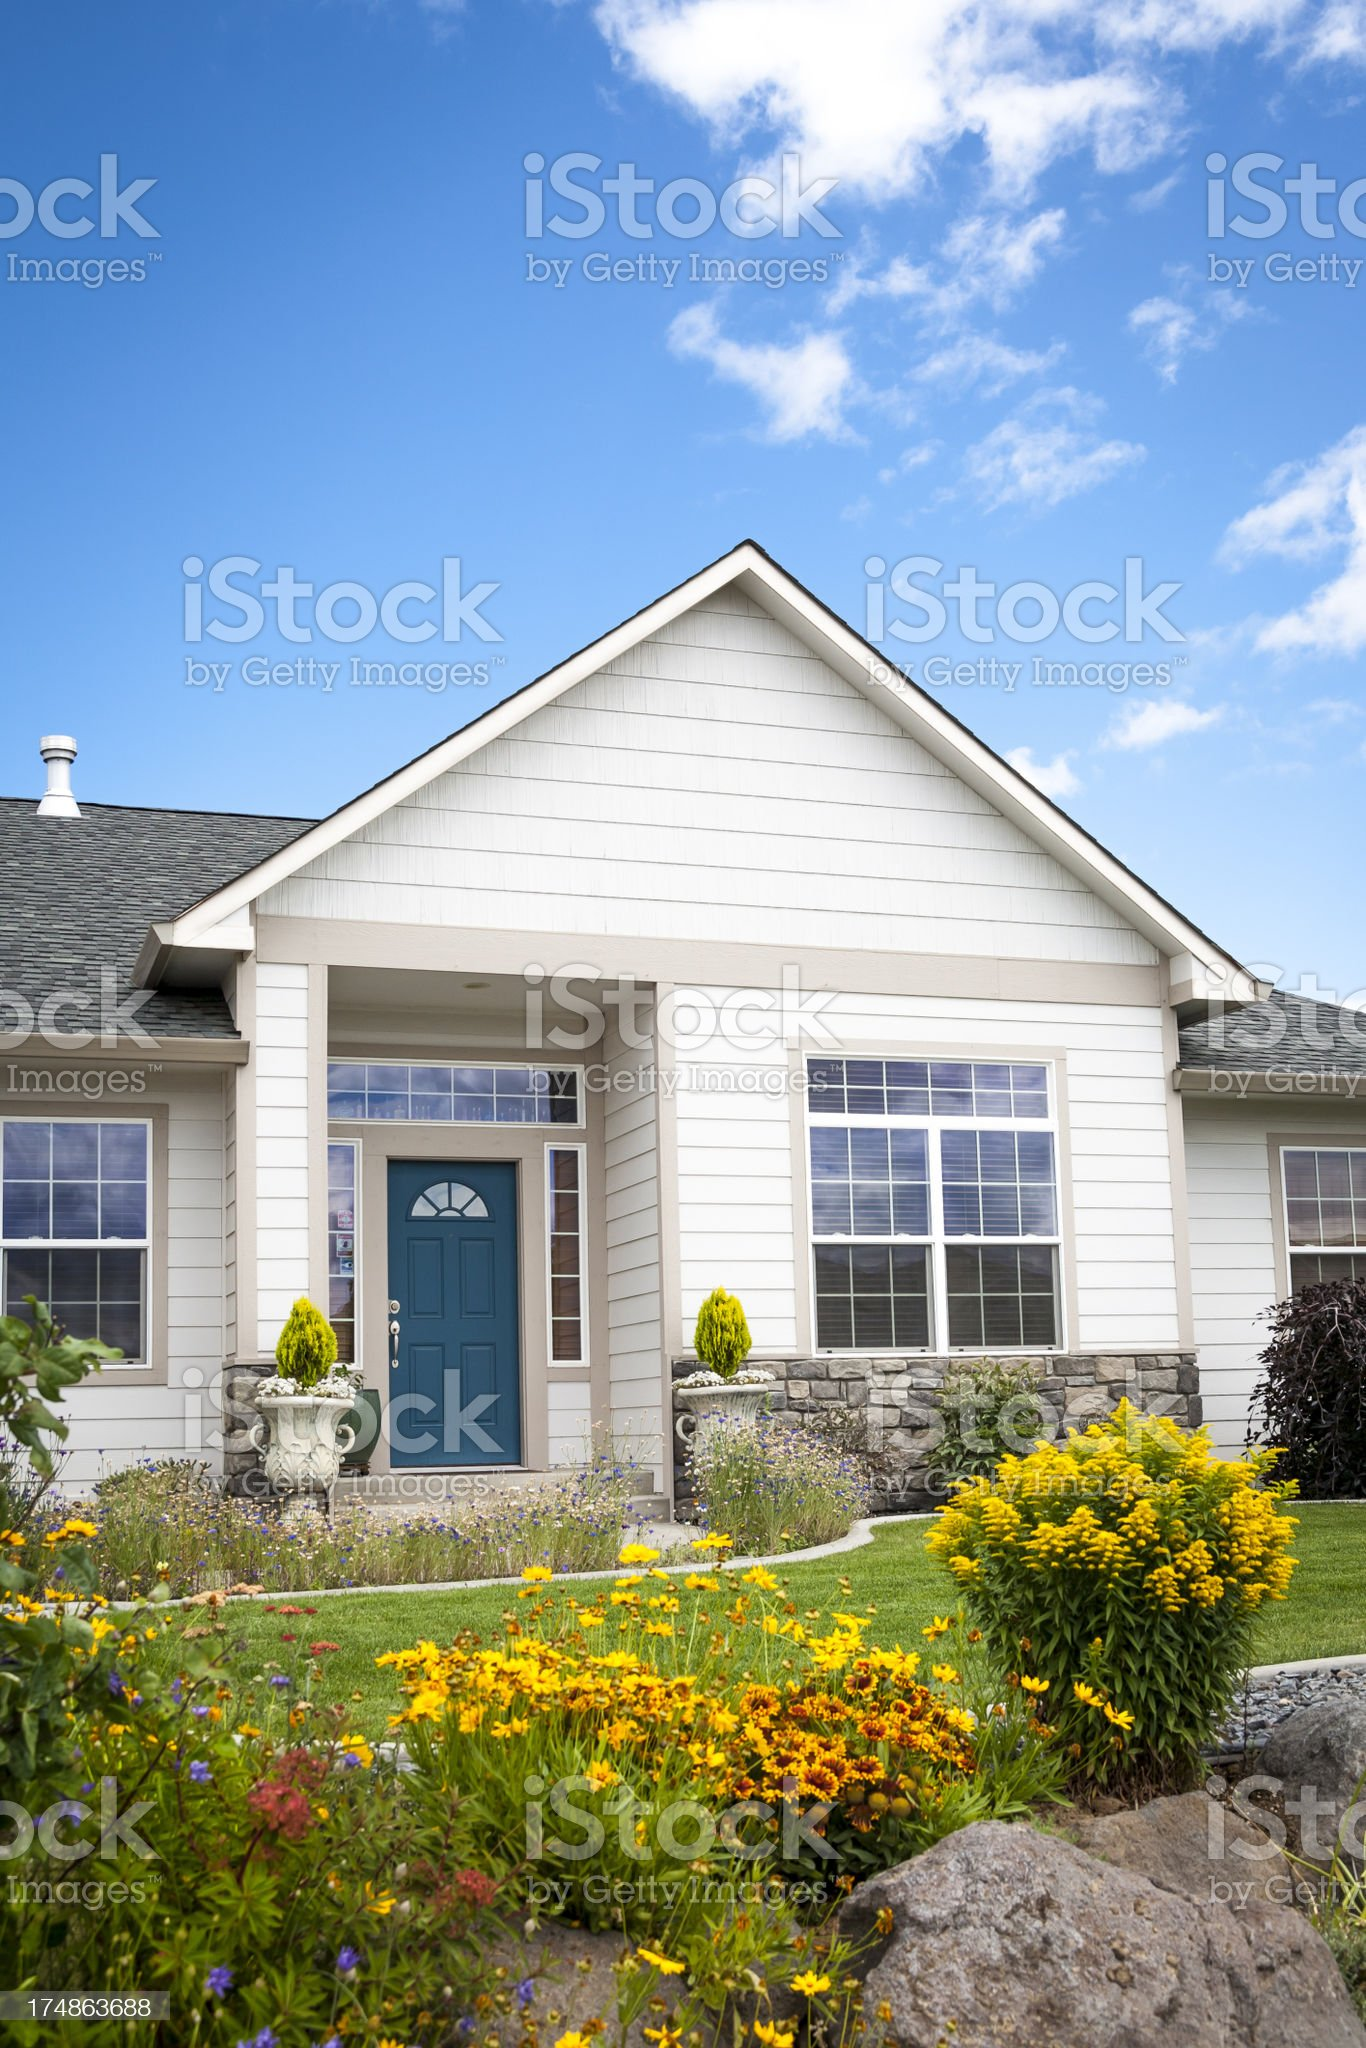 New Home with Flower Garden royalty-free stock photo